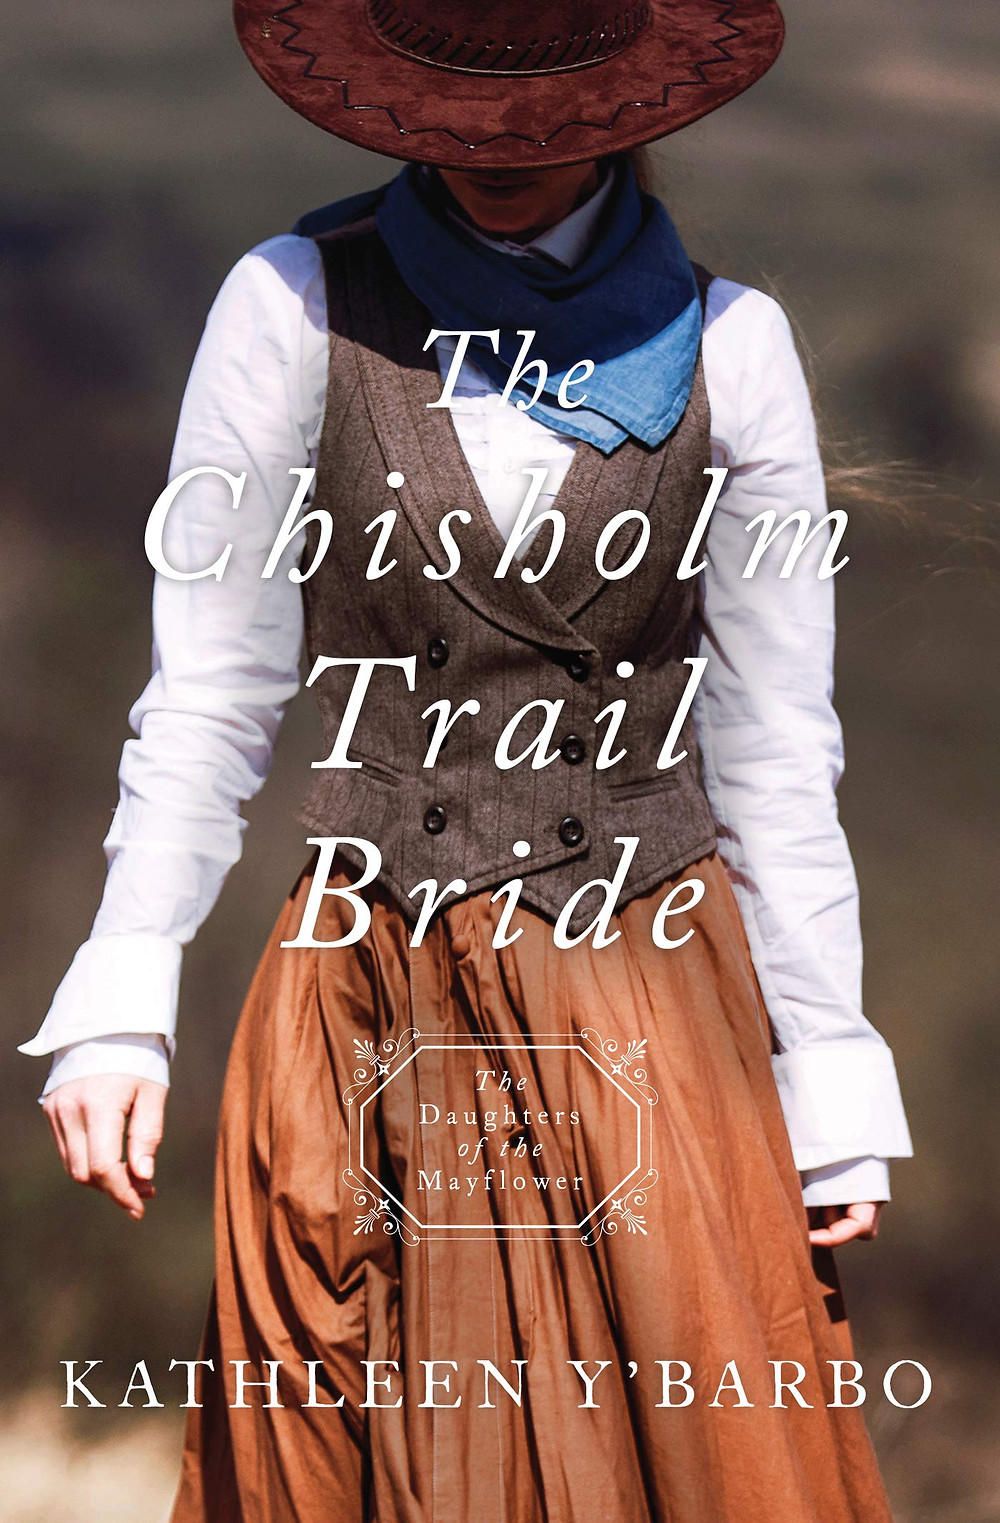 The Chisholm Trail Bride - Book Recommendation